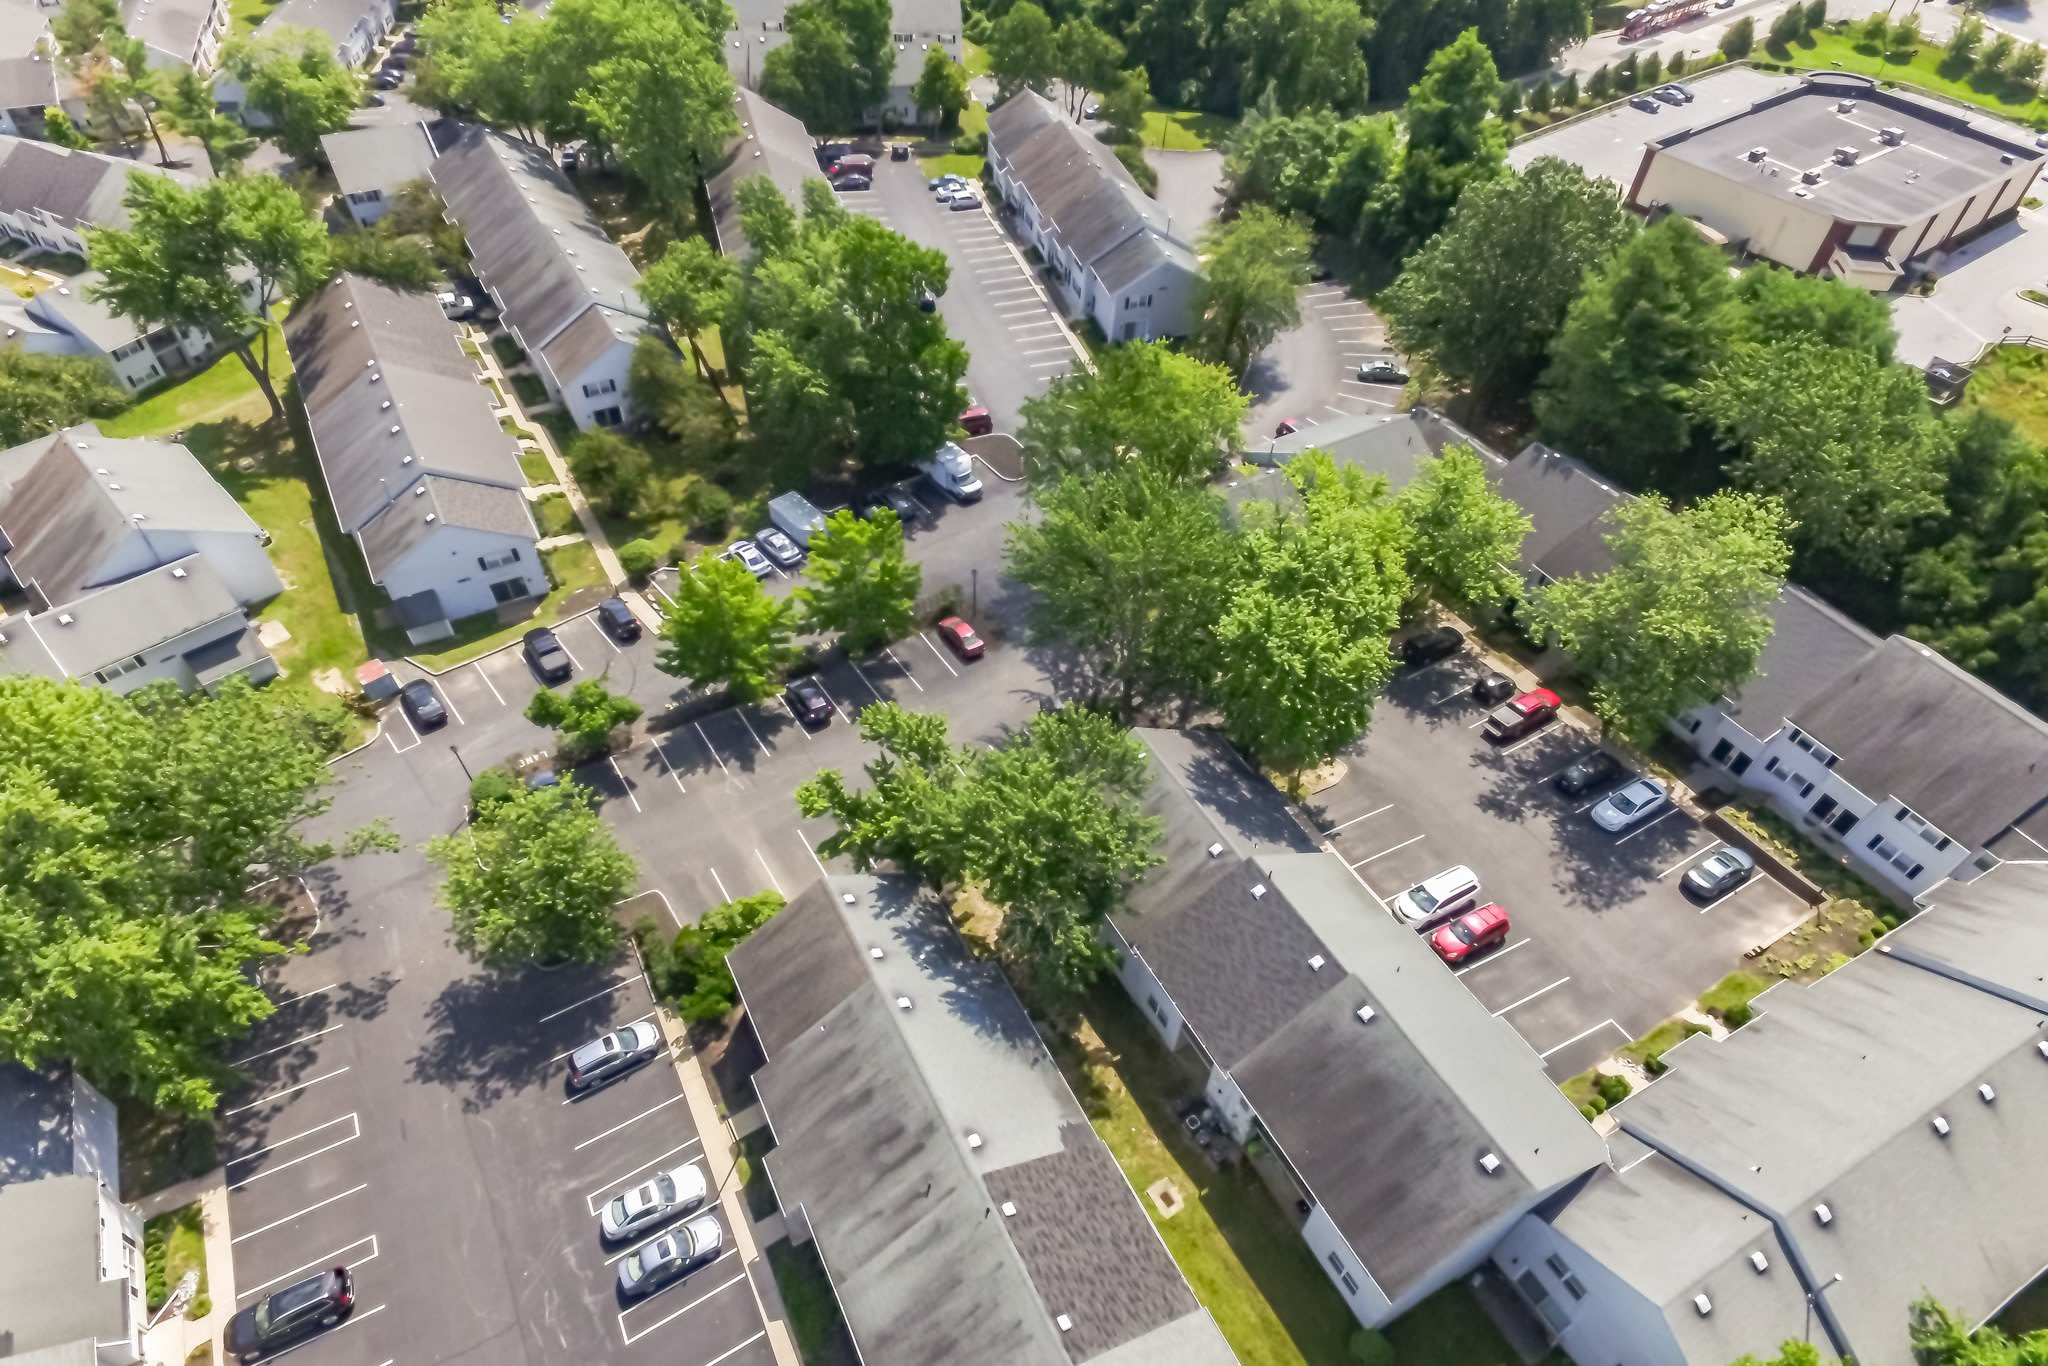 Aerial Neighborhood view of Westgate Village Apartments  in Malvern, PA